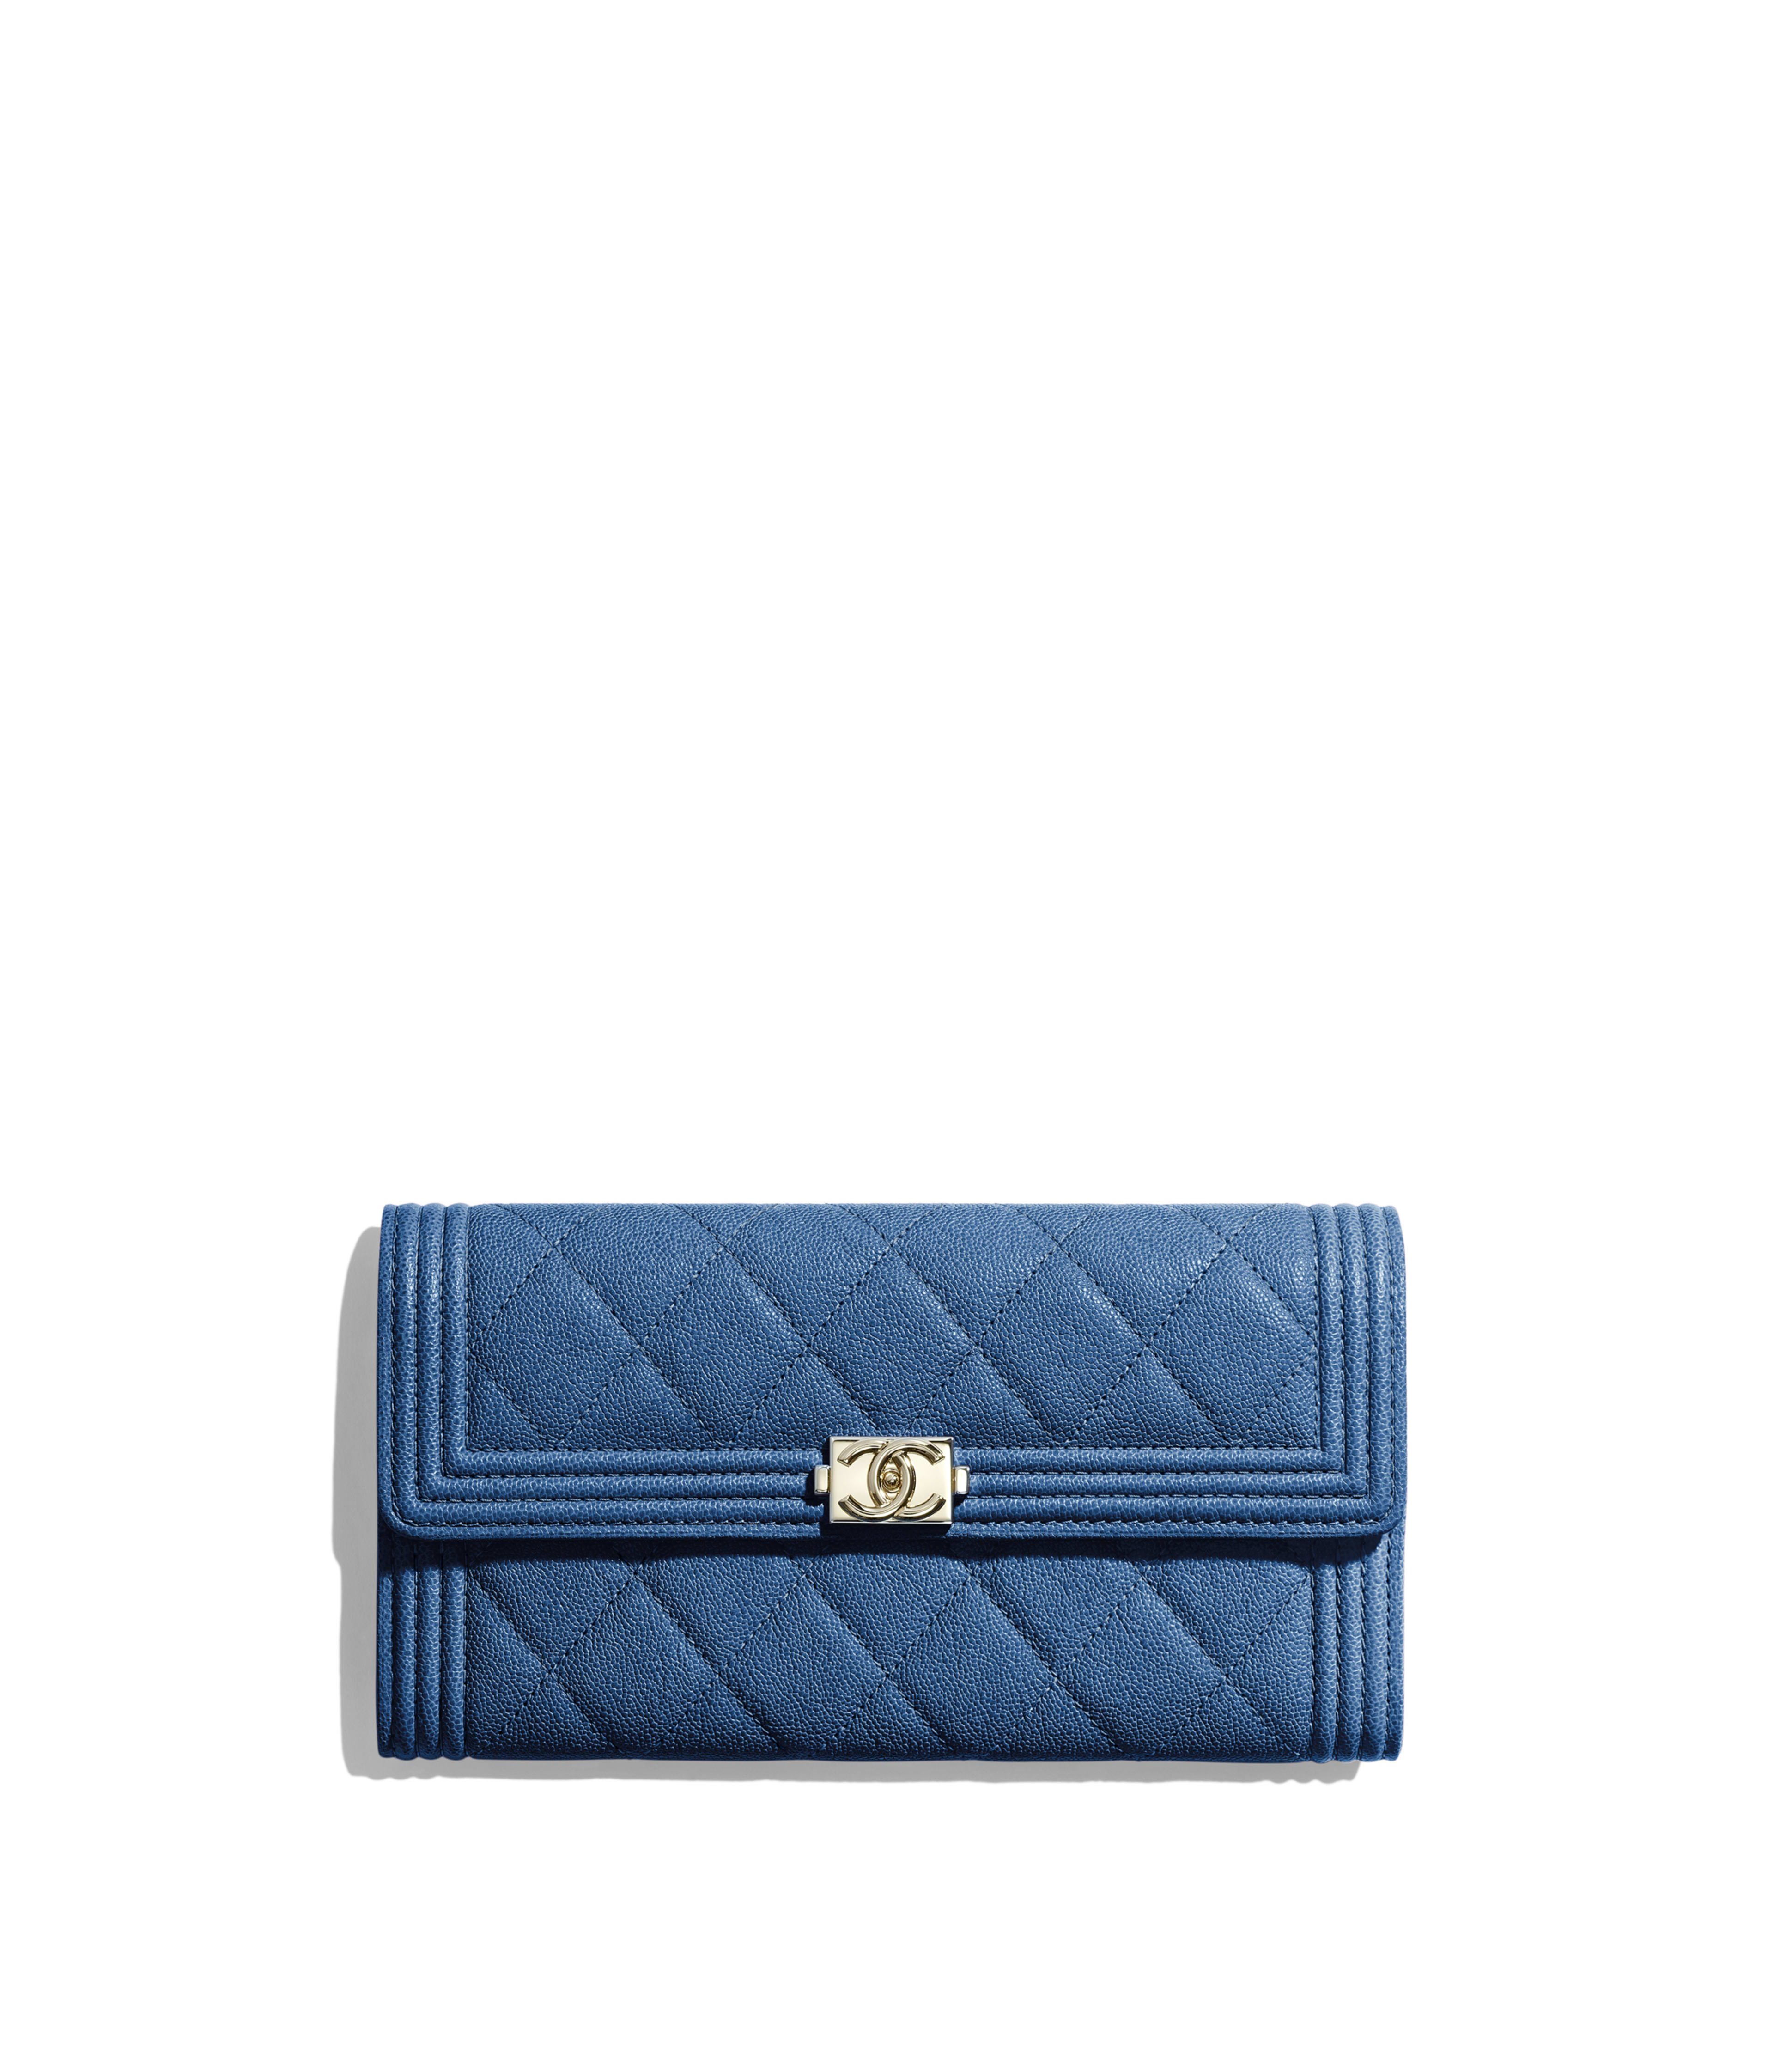 b00844837c1f23 BOY CHANEL Long Flap Wallet Grained Calfskin & Gold-Tone Metal, Dark Blue  Ref. A80286B00317N0901